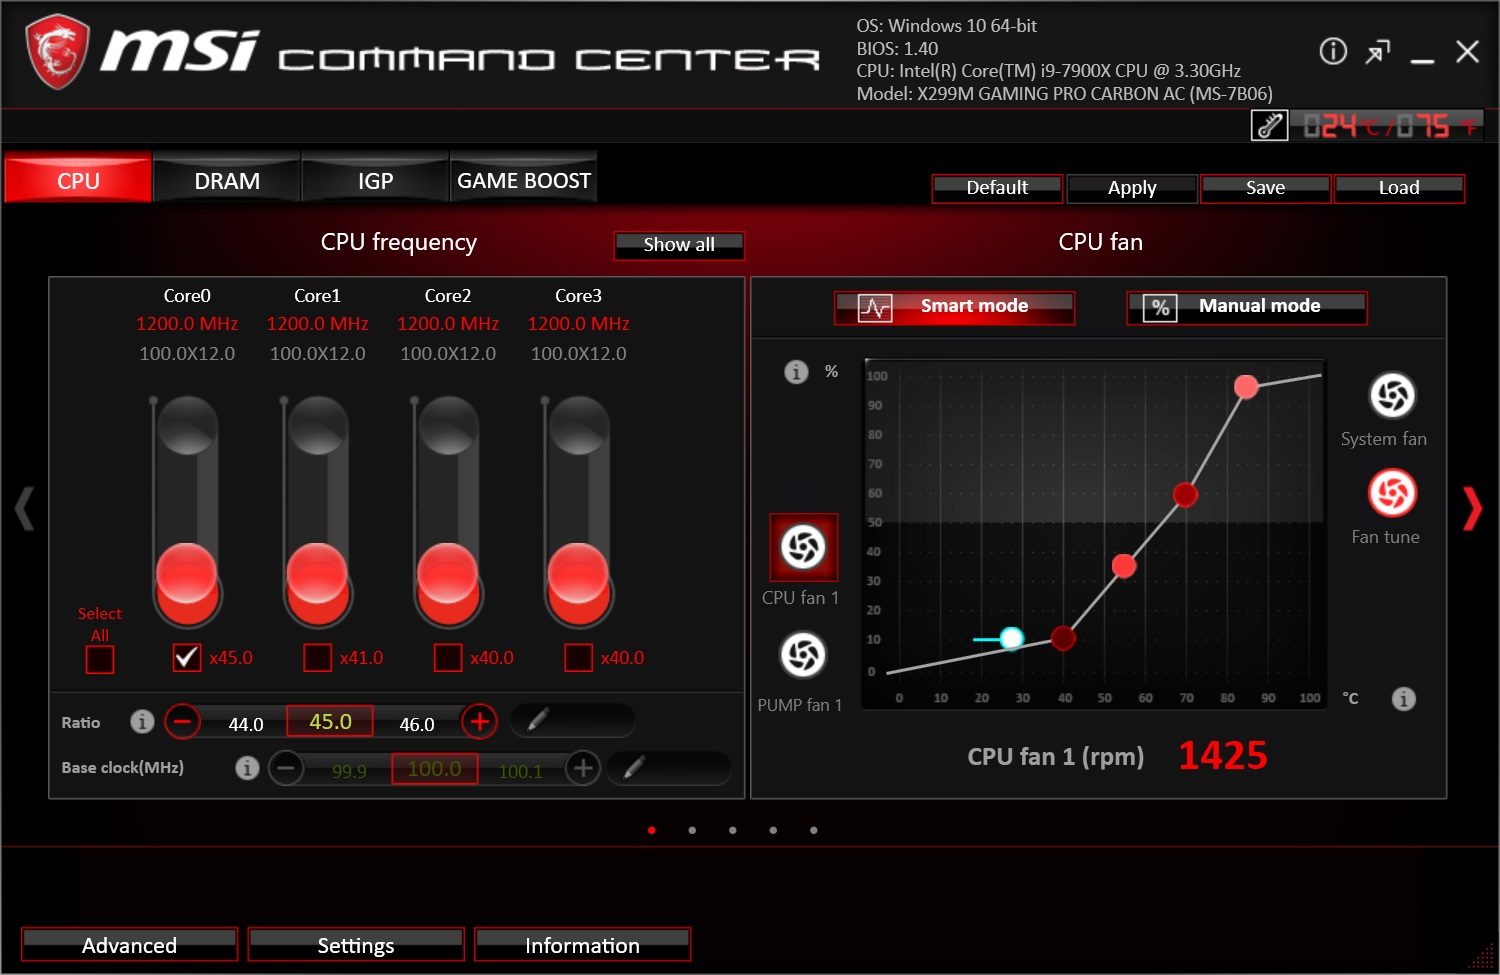 BIOS and Software - The MSI X299M Gaming Pro Carbon AC